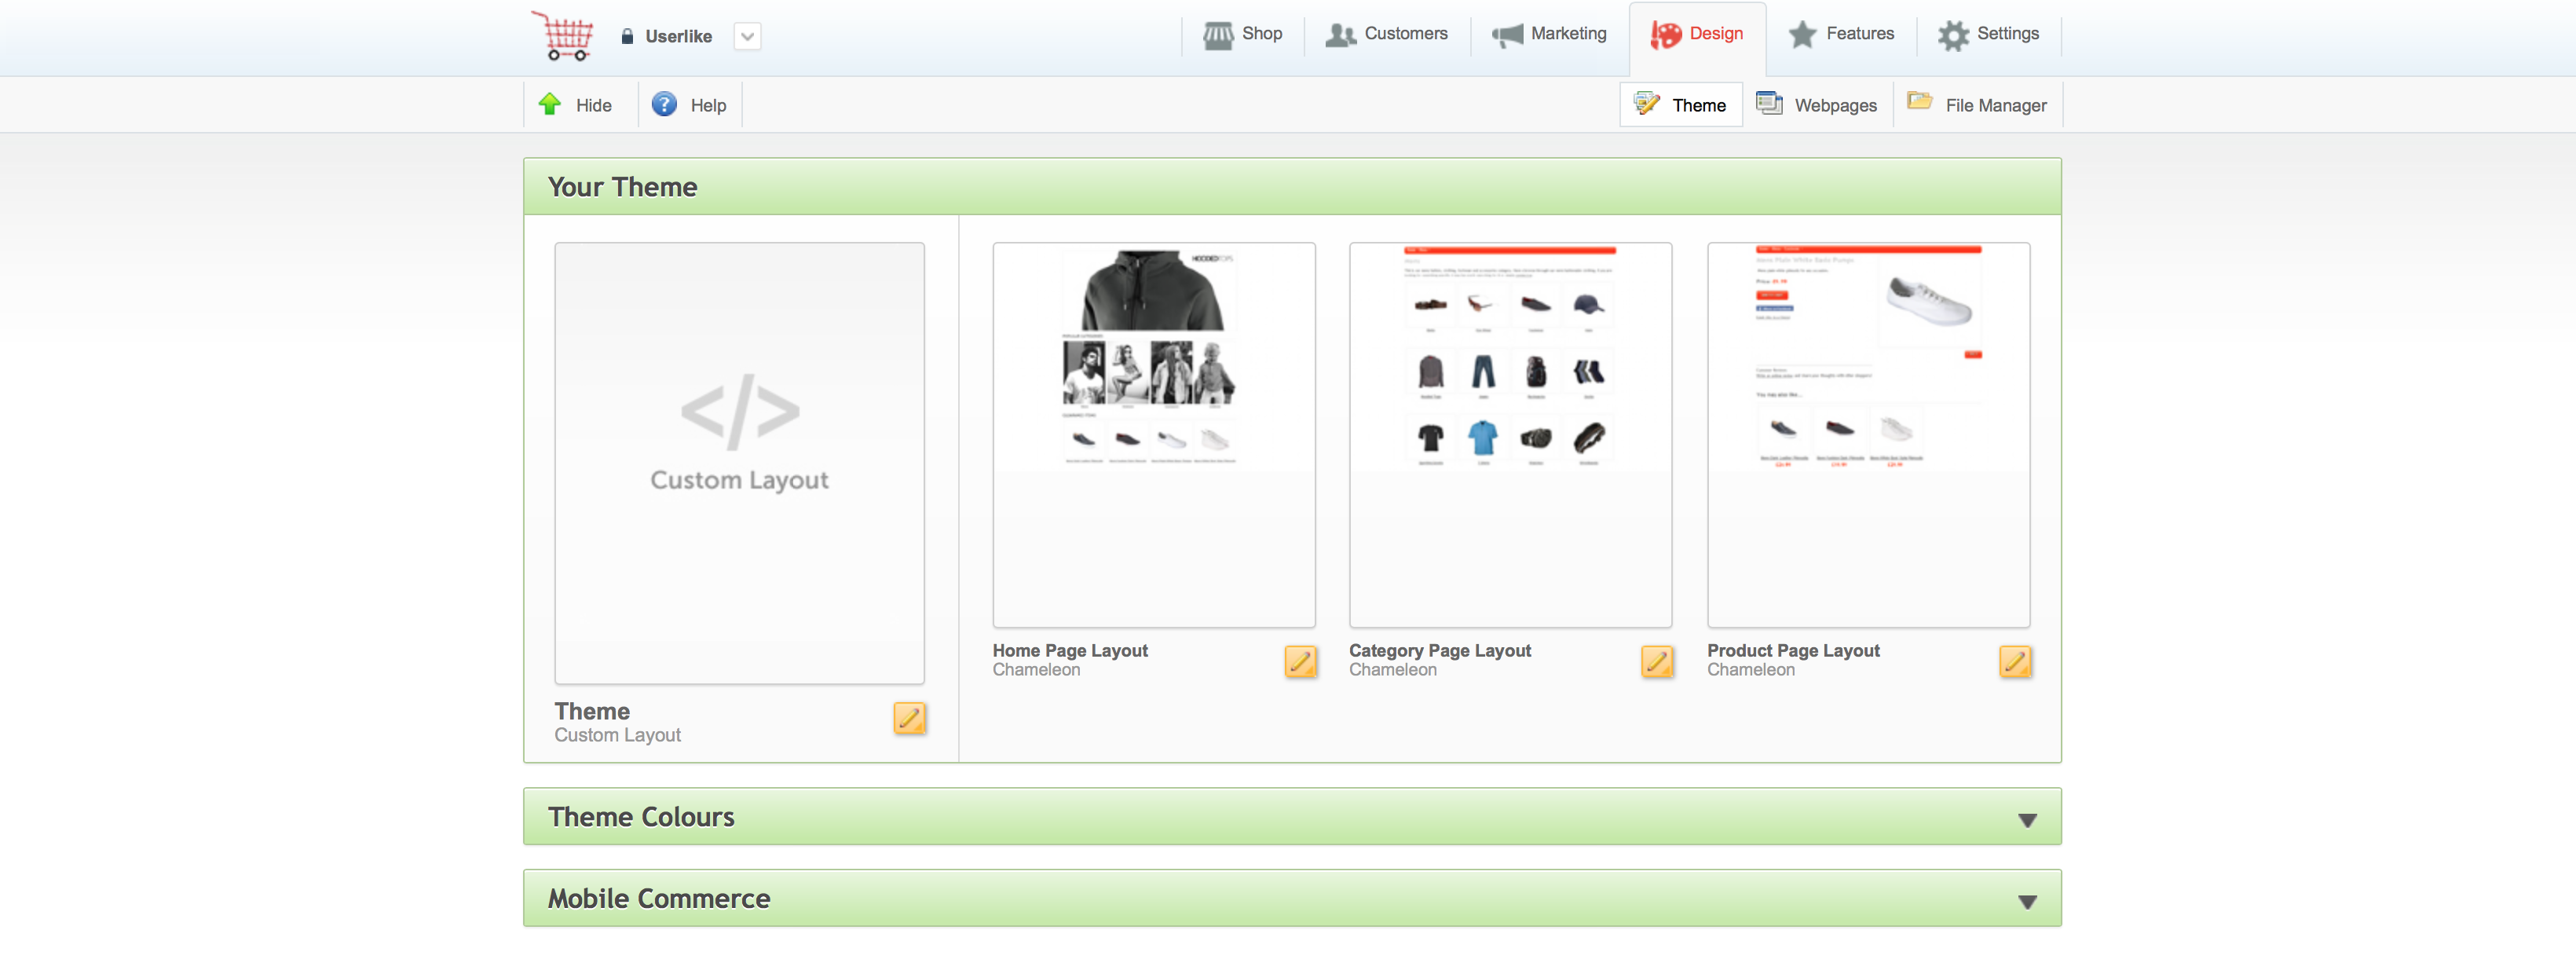 Design your online shop with ekmPowershop's drag and drop interface